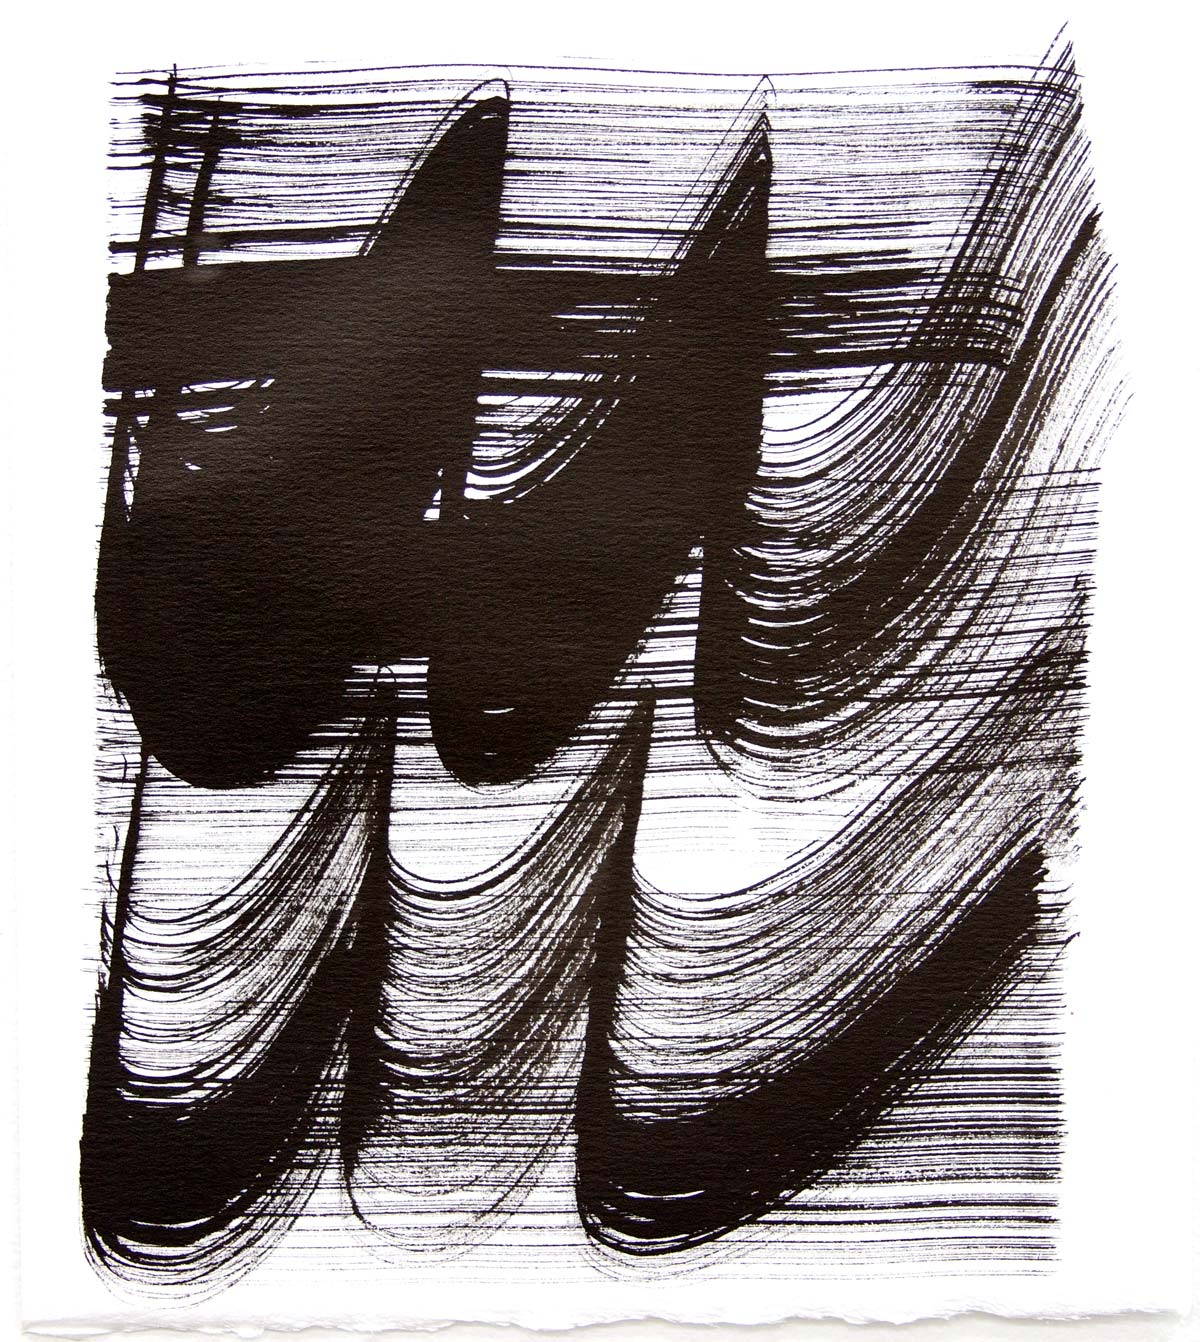 Waves 27 , 2018, Sumi Ink on rag paper, 10 x 9 in.